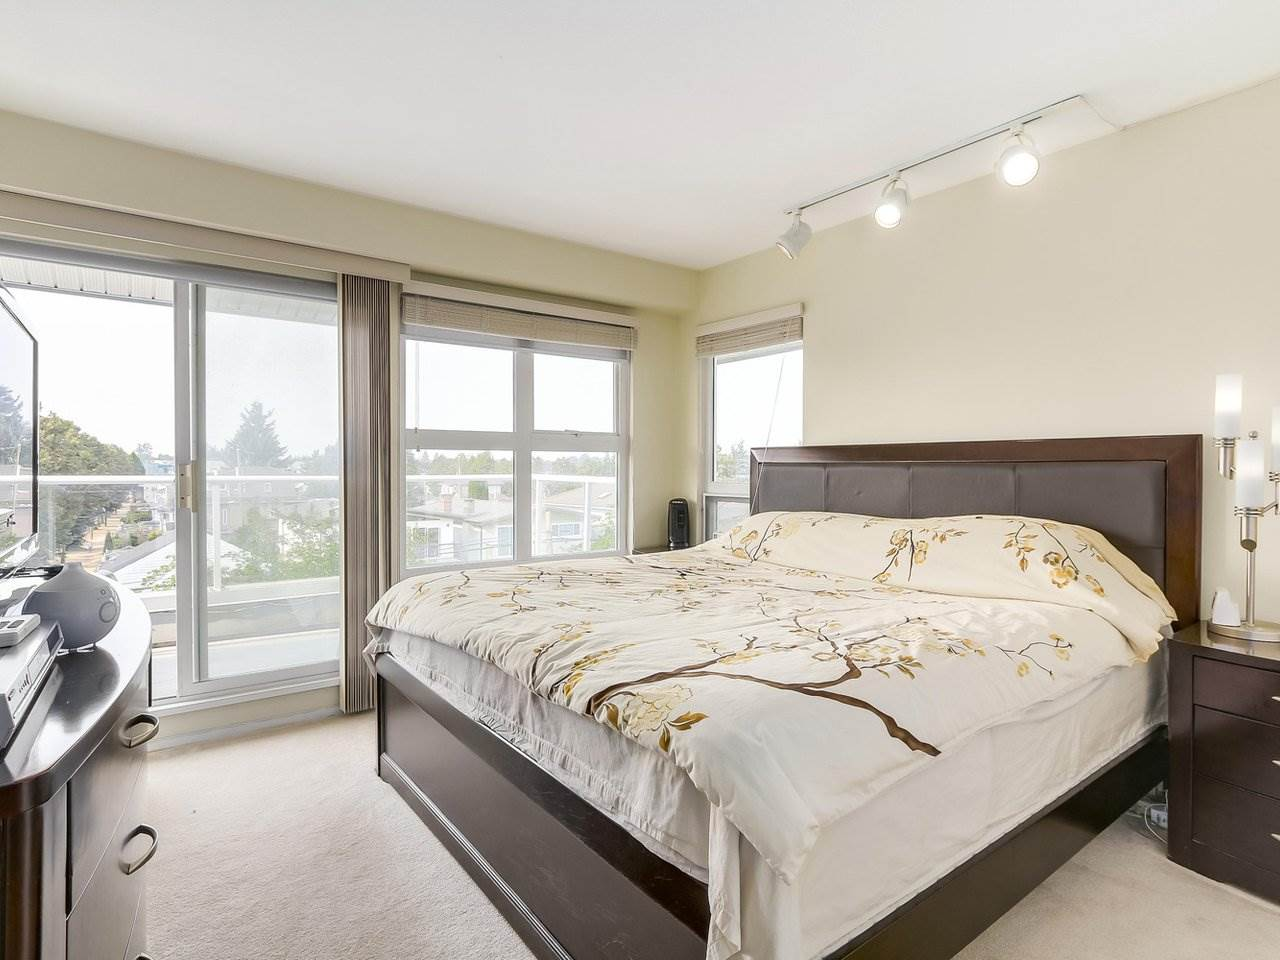 Condo Apartment at 405 2965 HORLEY STREET, Unit 405, Vancouver East, British Columbia. Image 10